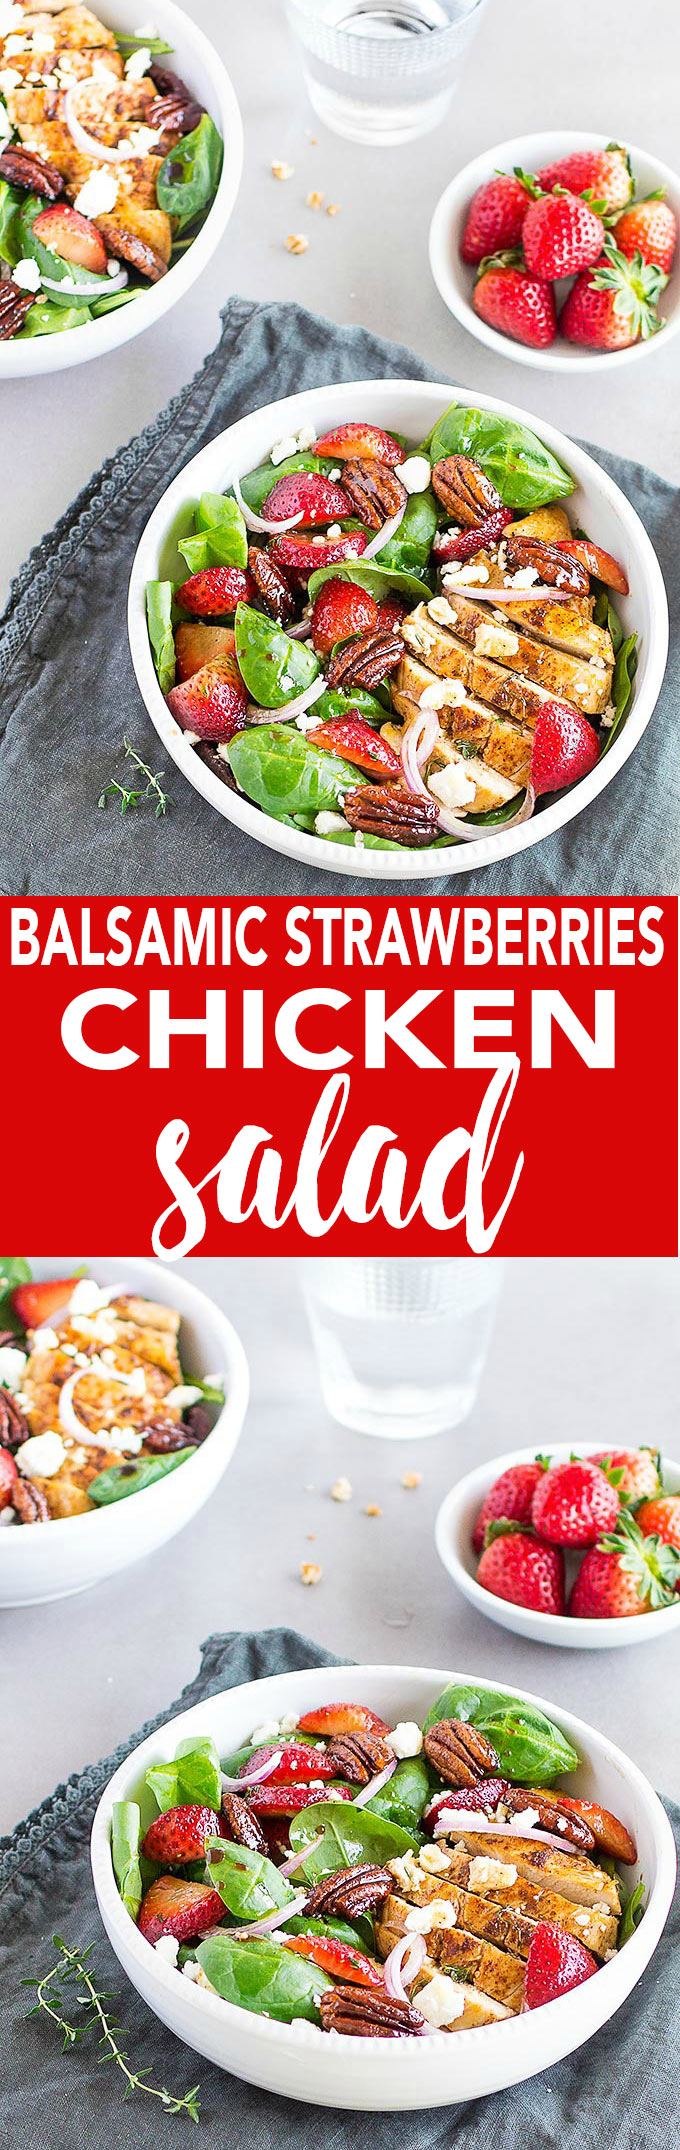 A flavorful, colorful and filling chicken salad loaded with baby spinach, juicy strawberries, candied pecans, thinly sliced red onions and crumbled feta cheese.